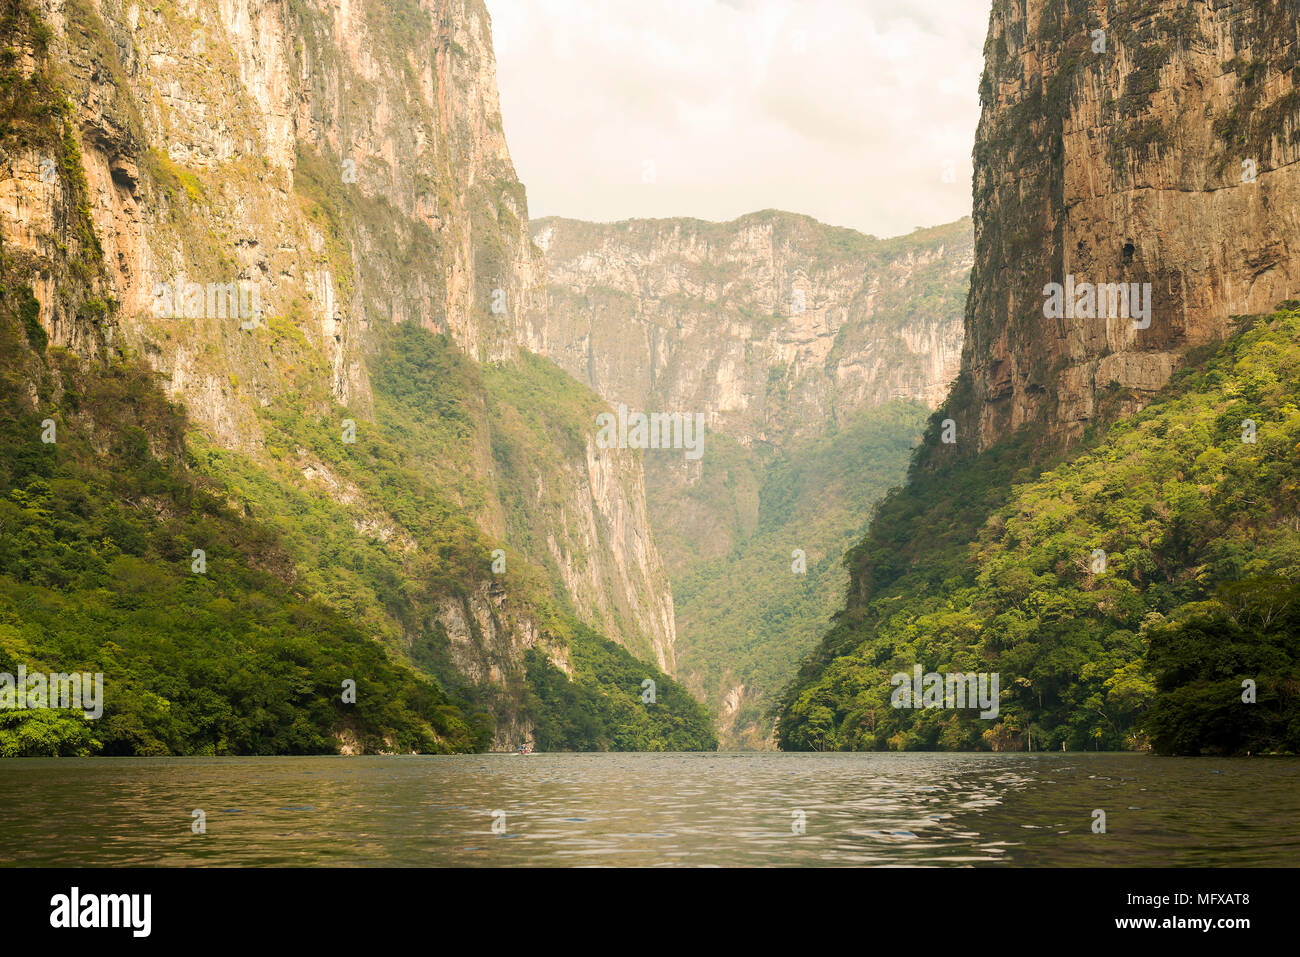 Sumidero Canyon Chiapas, Mexico with massive canyon walls - Stock Image